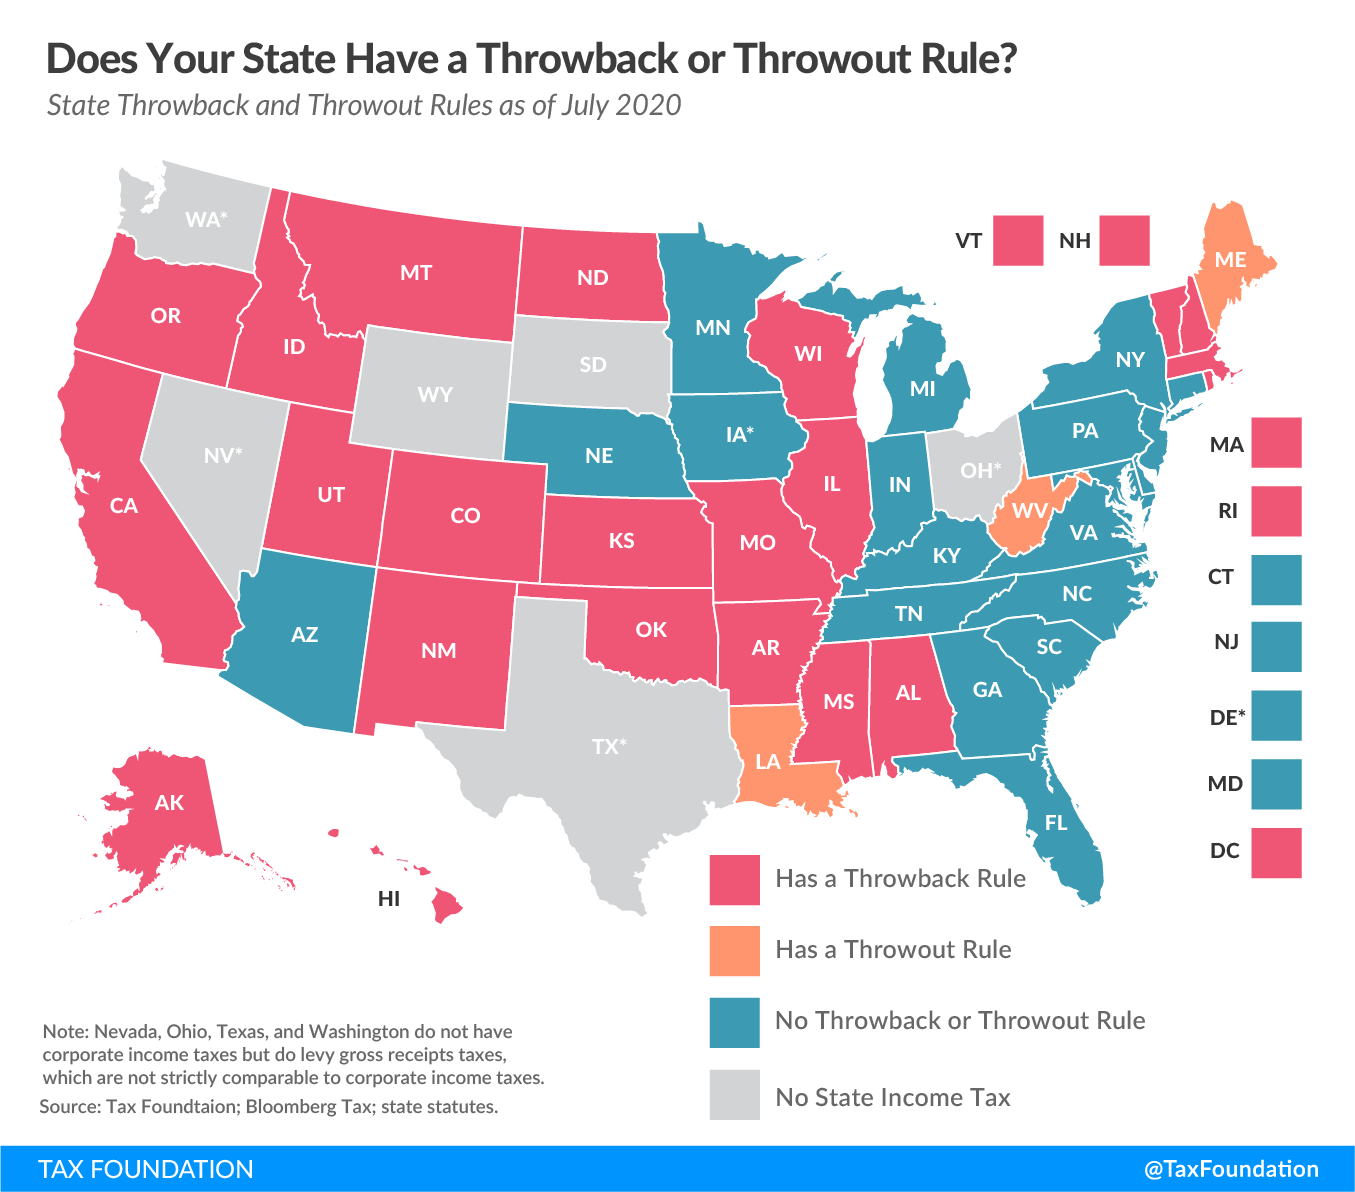 State throwback rules, state throwout rules